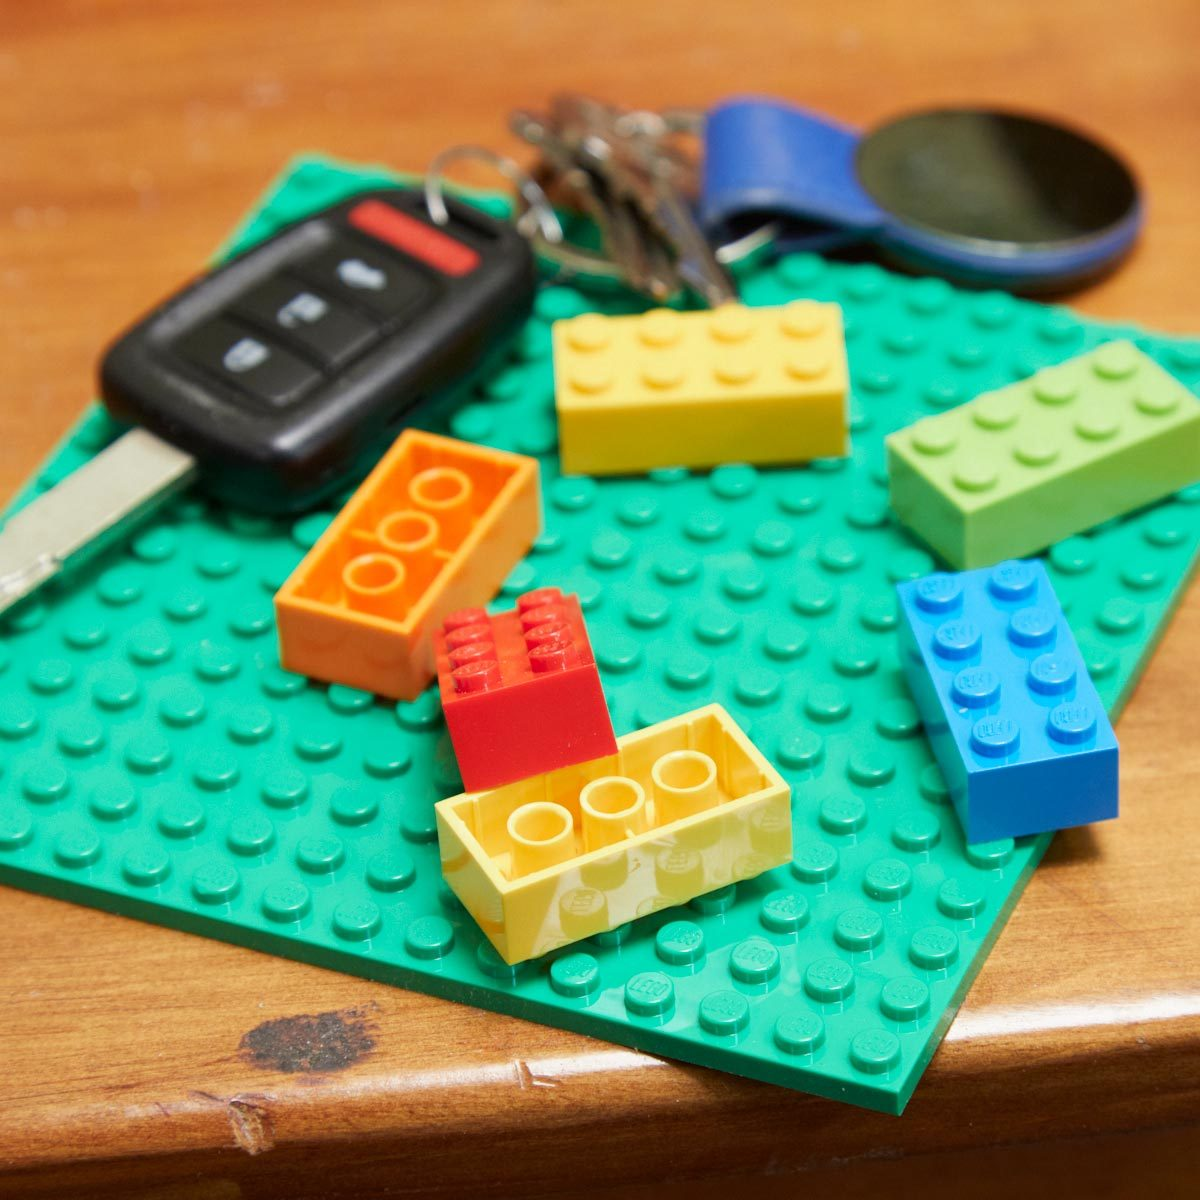 HH lego keychains money saving